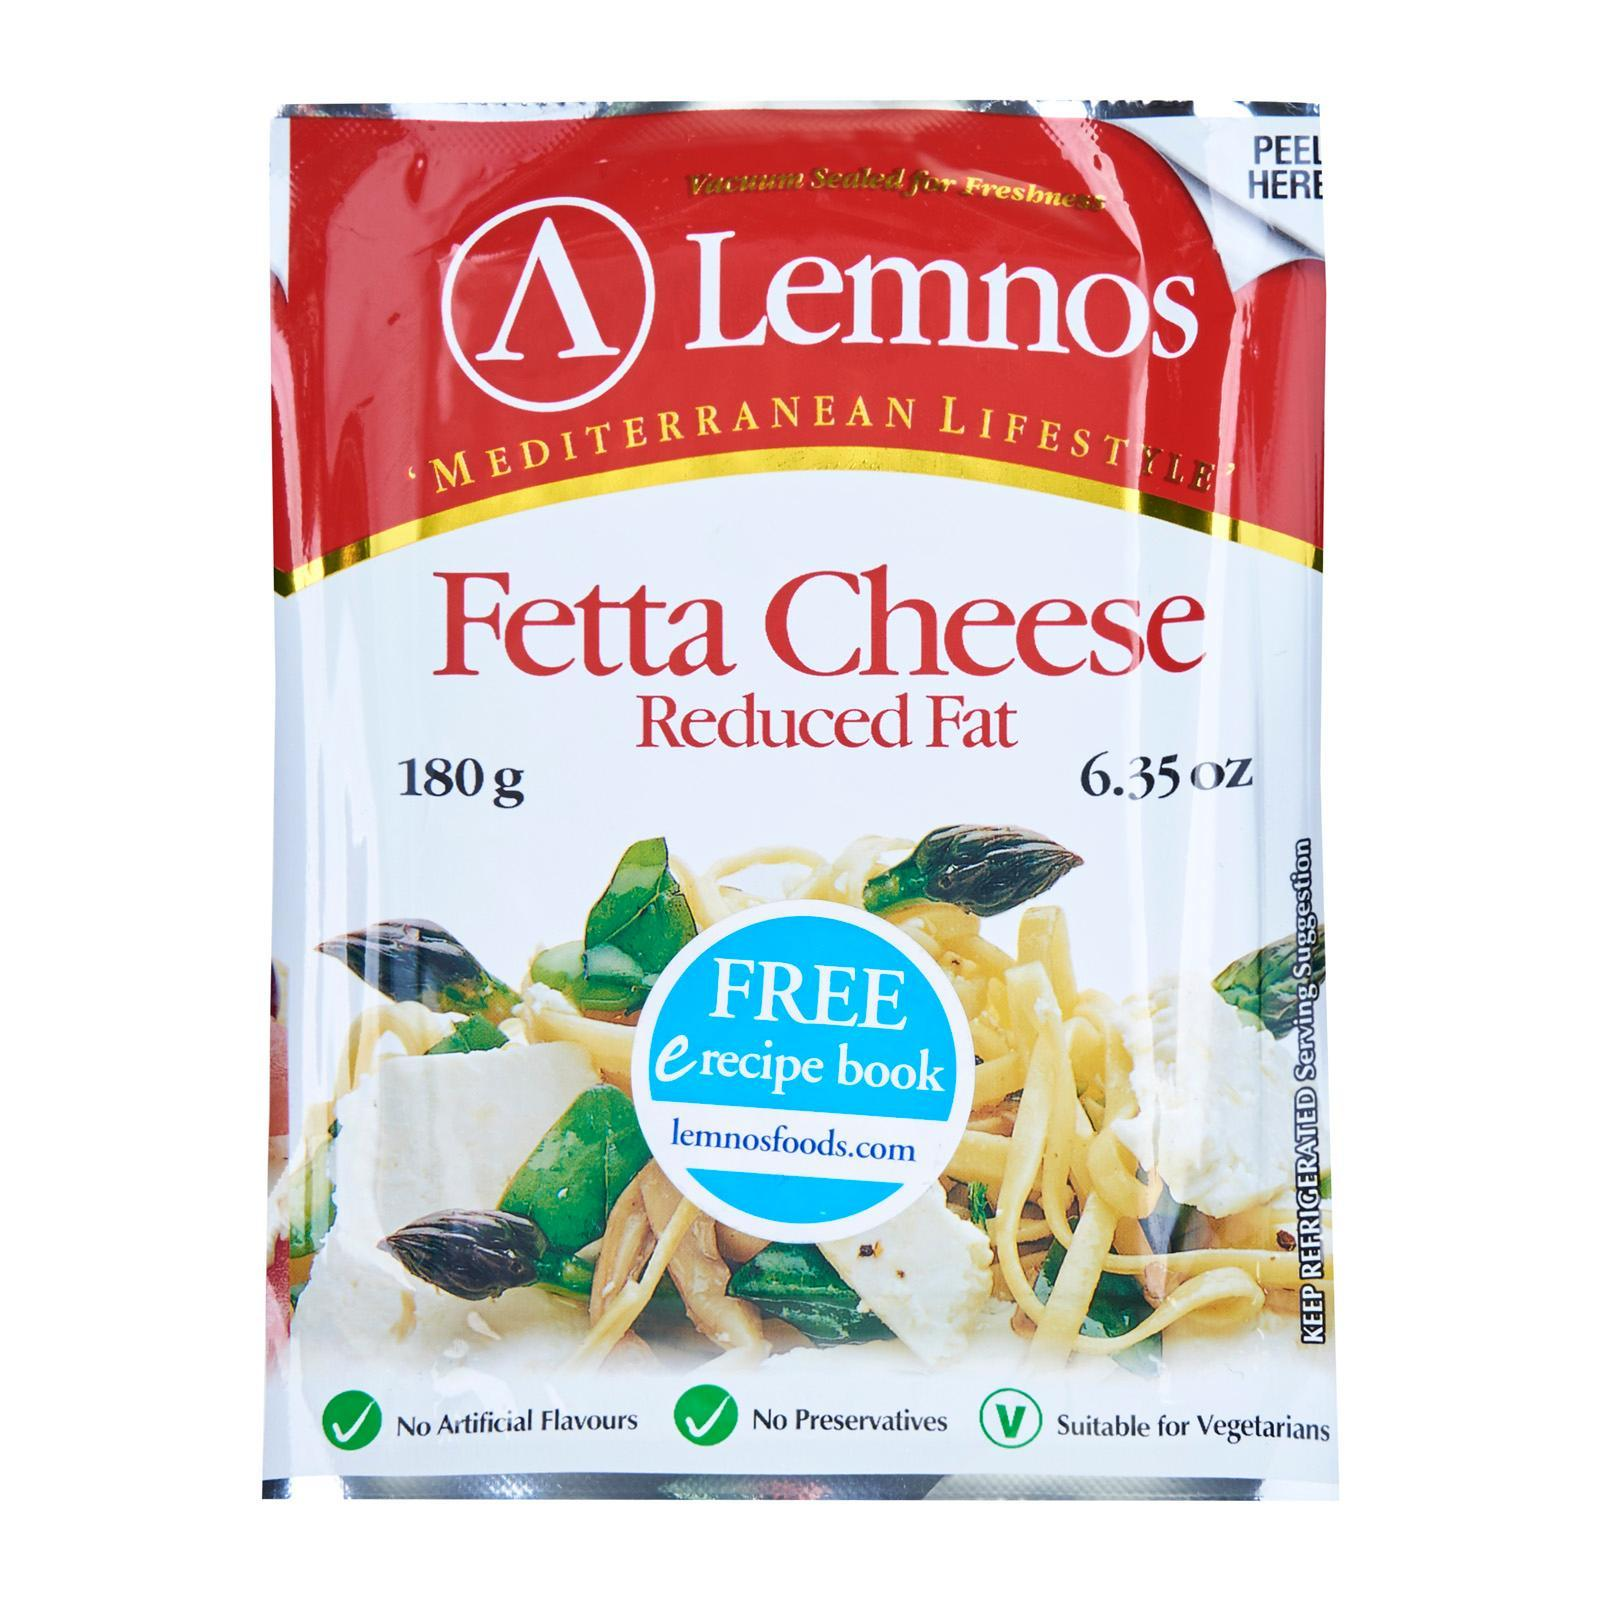 Lemnos Reduced Fat Fetta Cheese By Redmart.